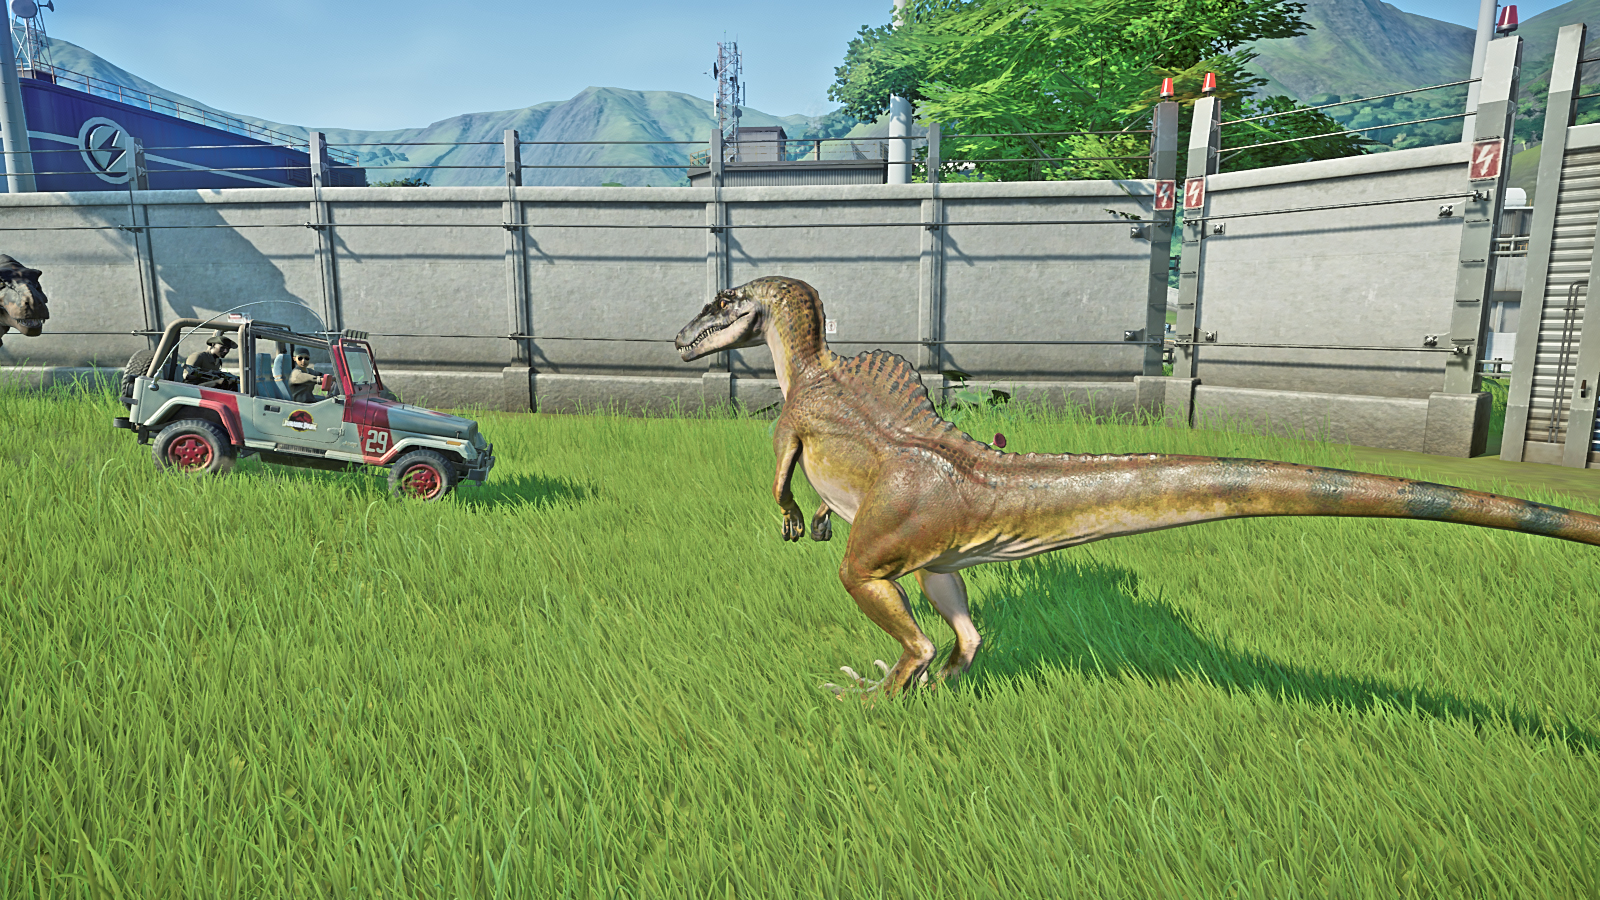 Jurassic World Evolution Spinoraptor - How to Get the